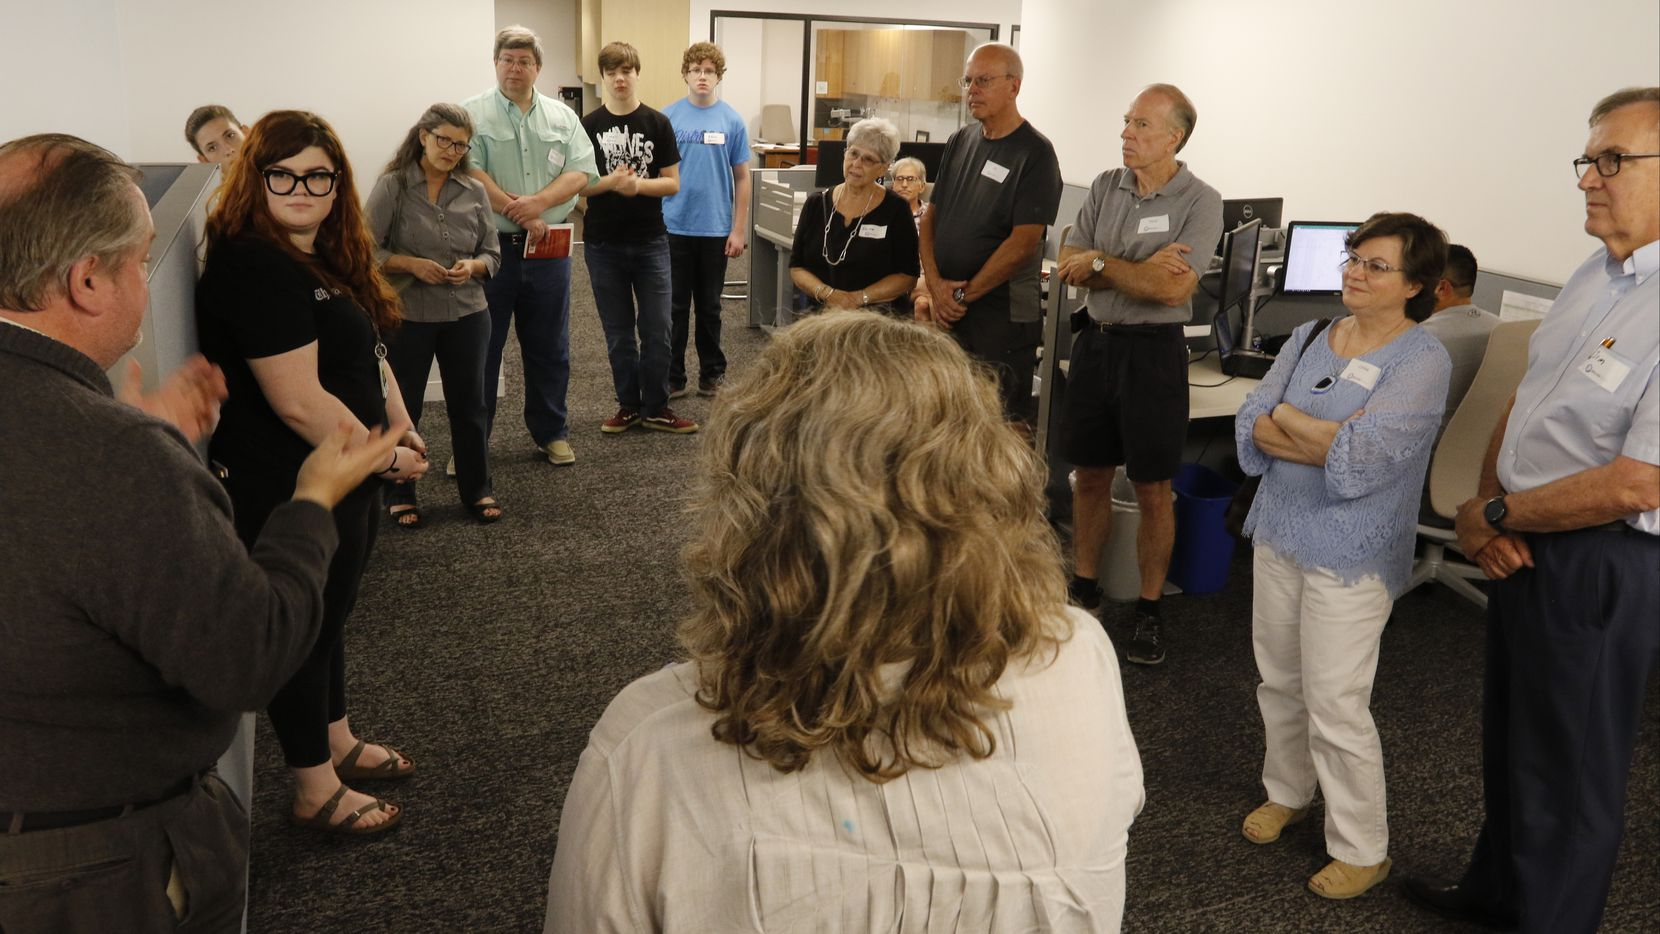 Michael Lindenberger of The Dallas Morning News talks with subscribers as they tour The News' building.